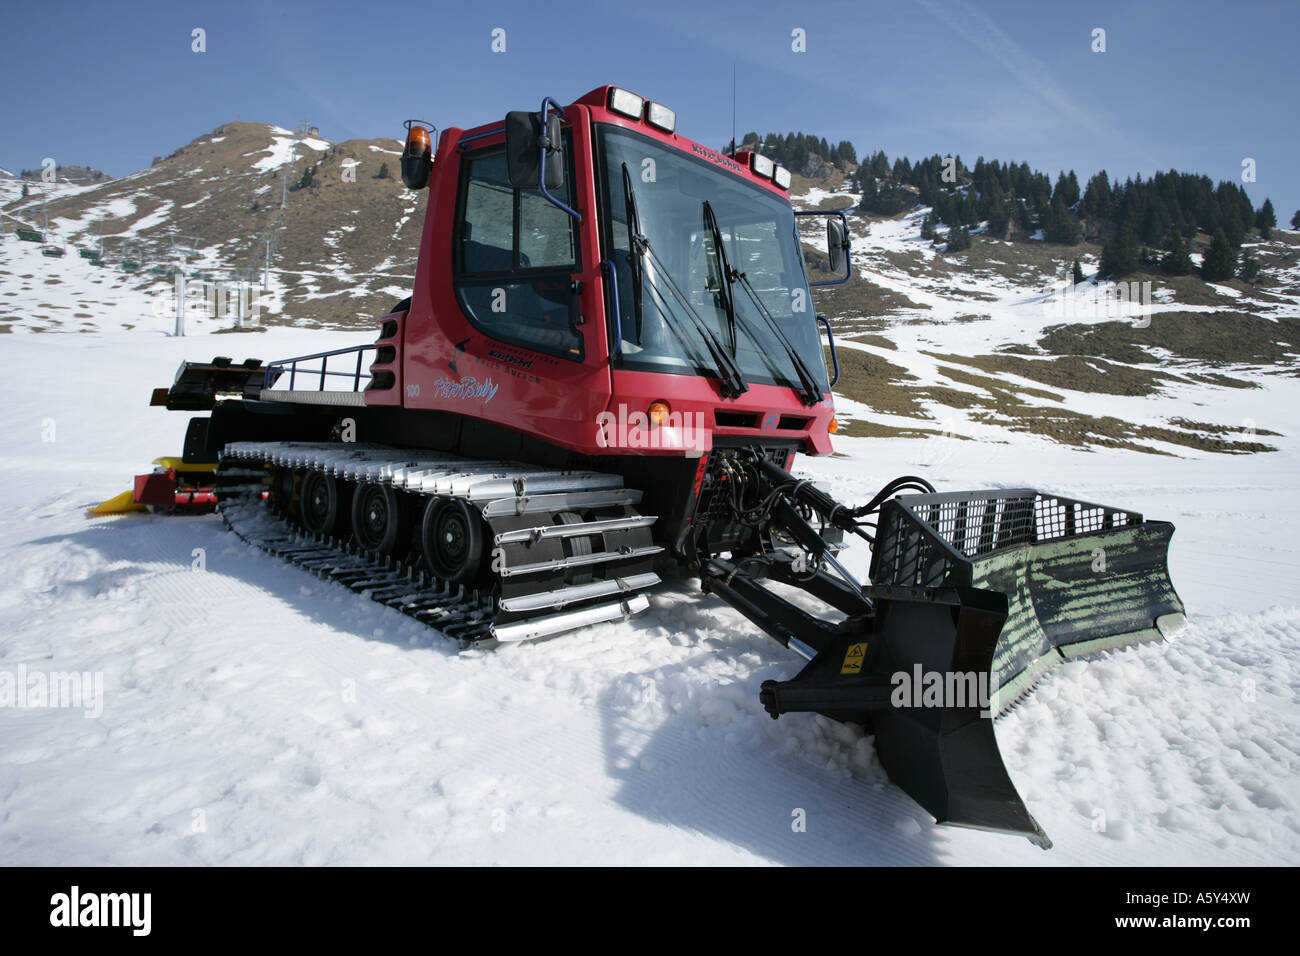 snow plough on piste, Kitzbuhel, Austria - Stock Image